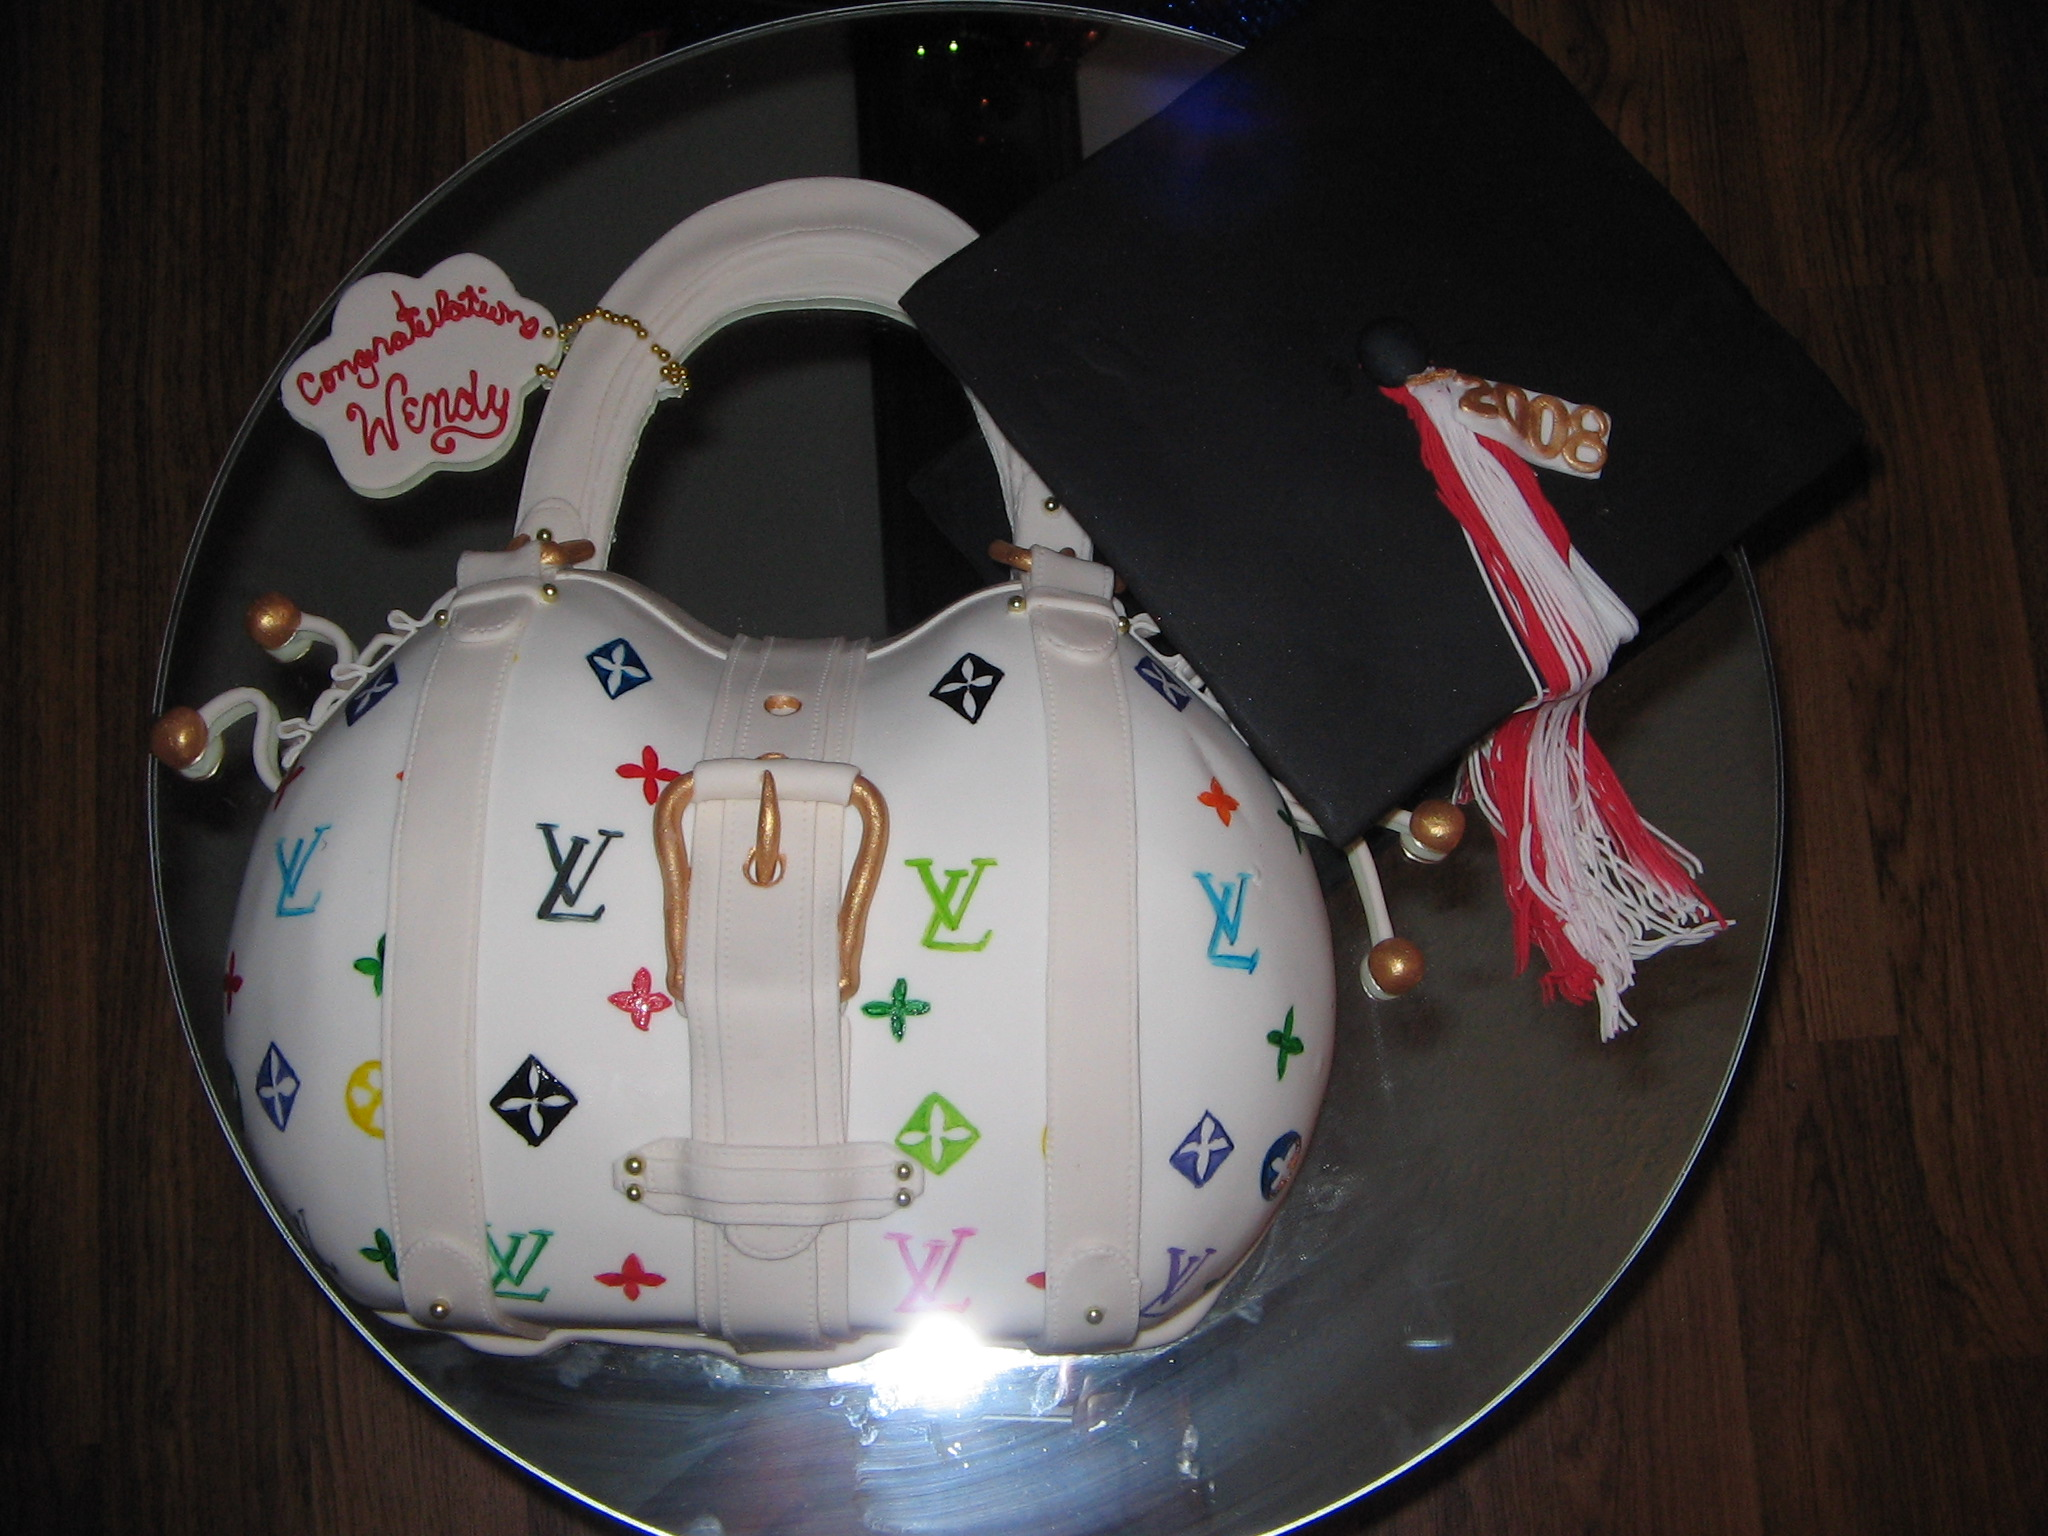 Louis Vuitton and Grad cap